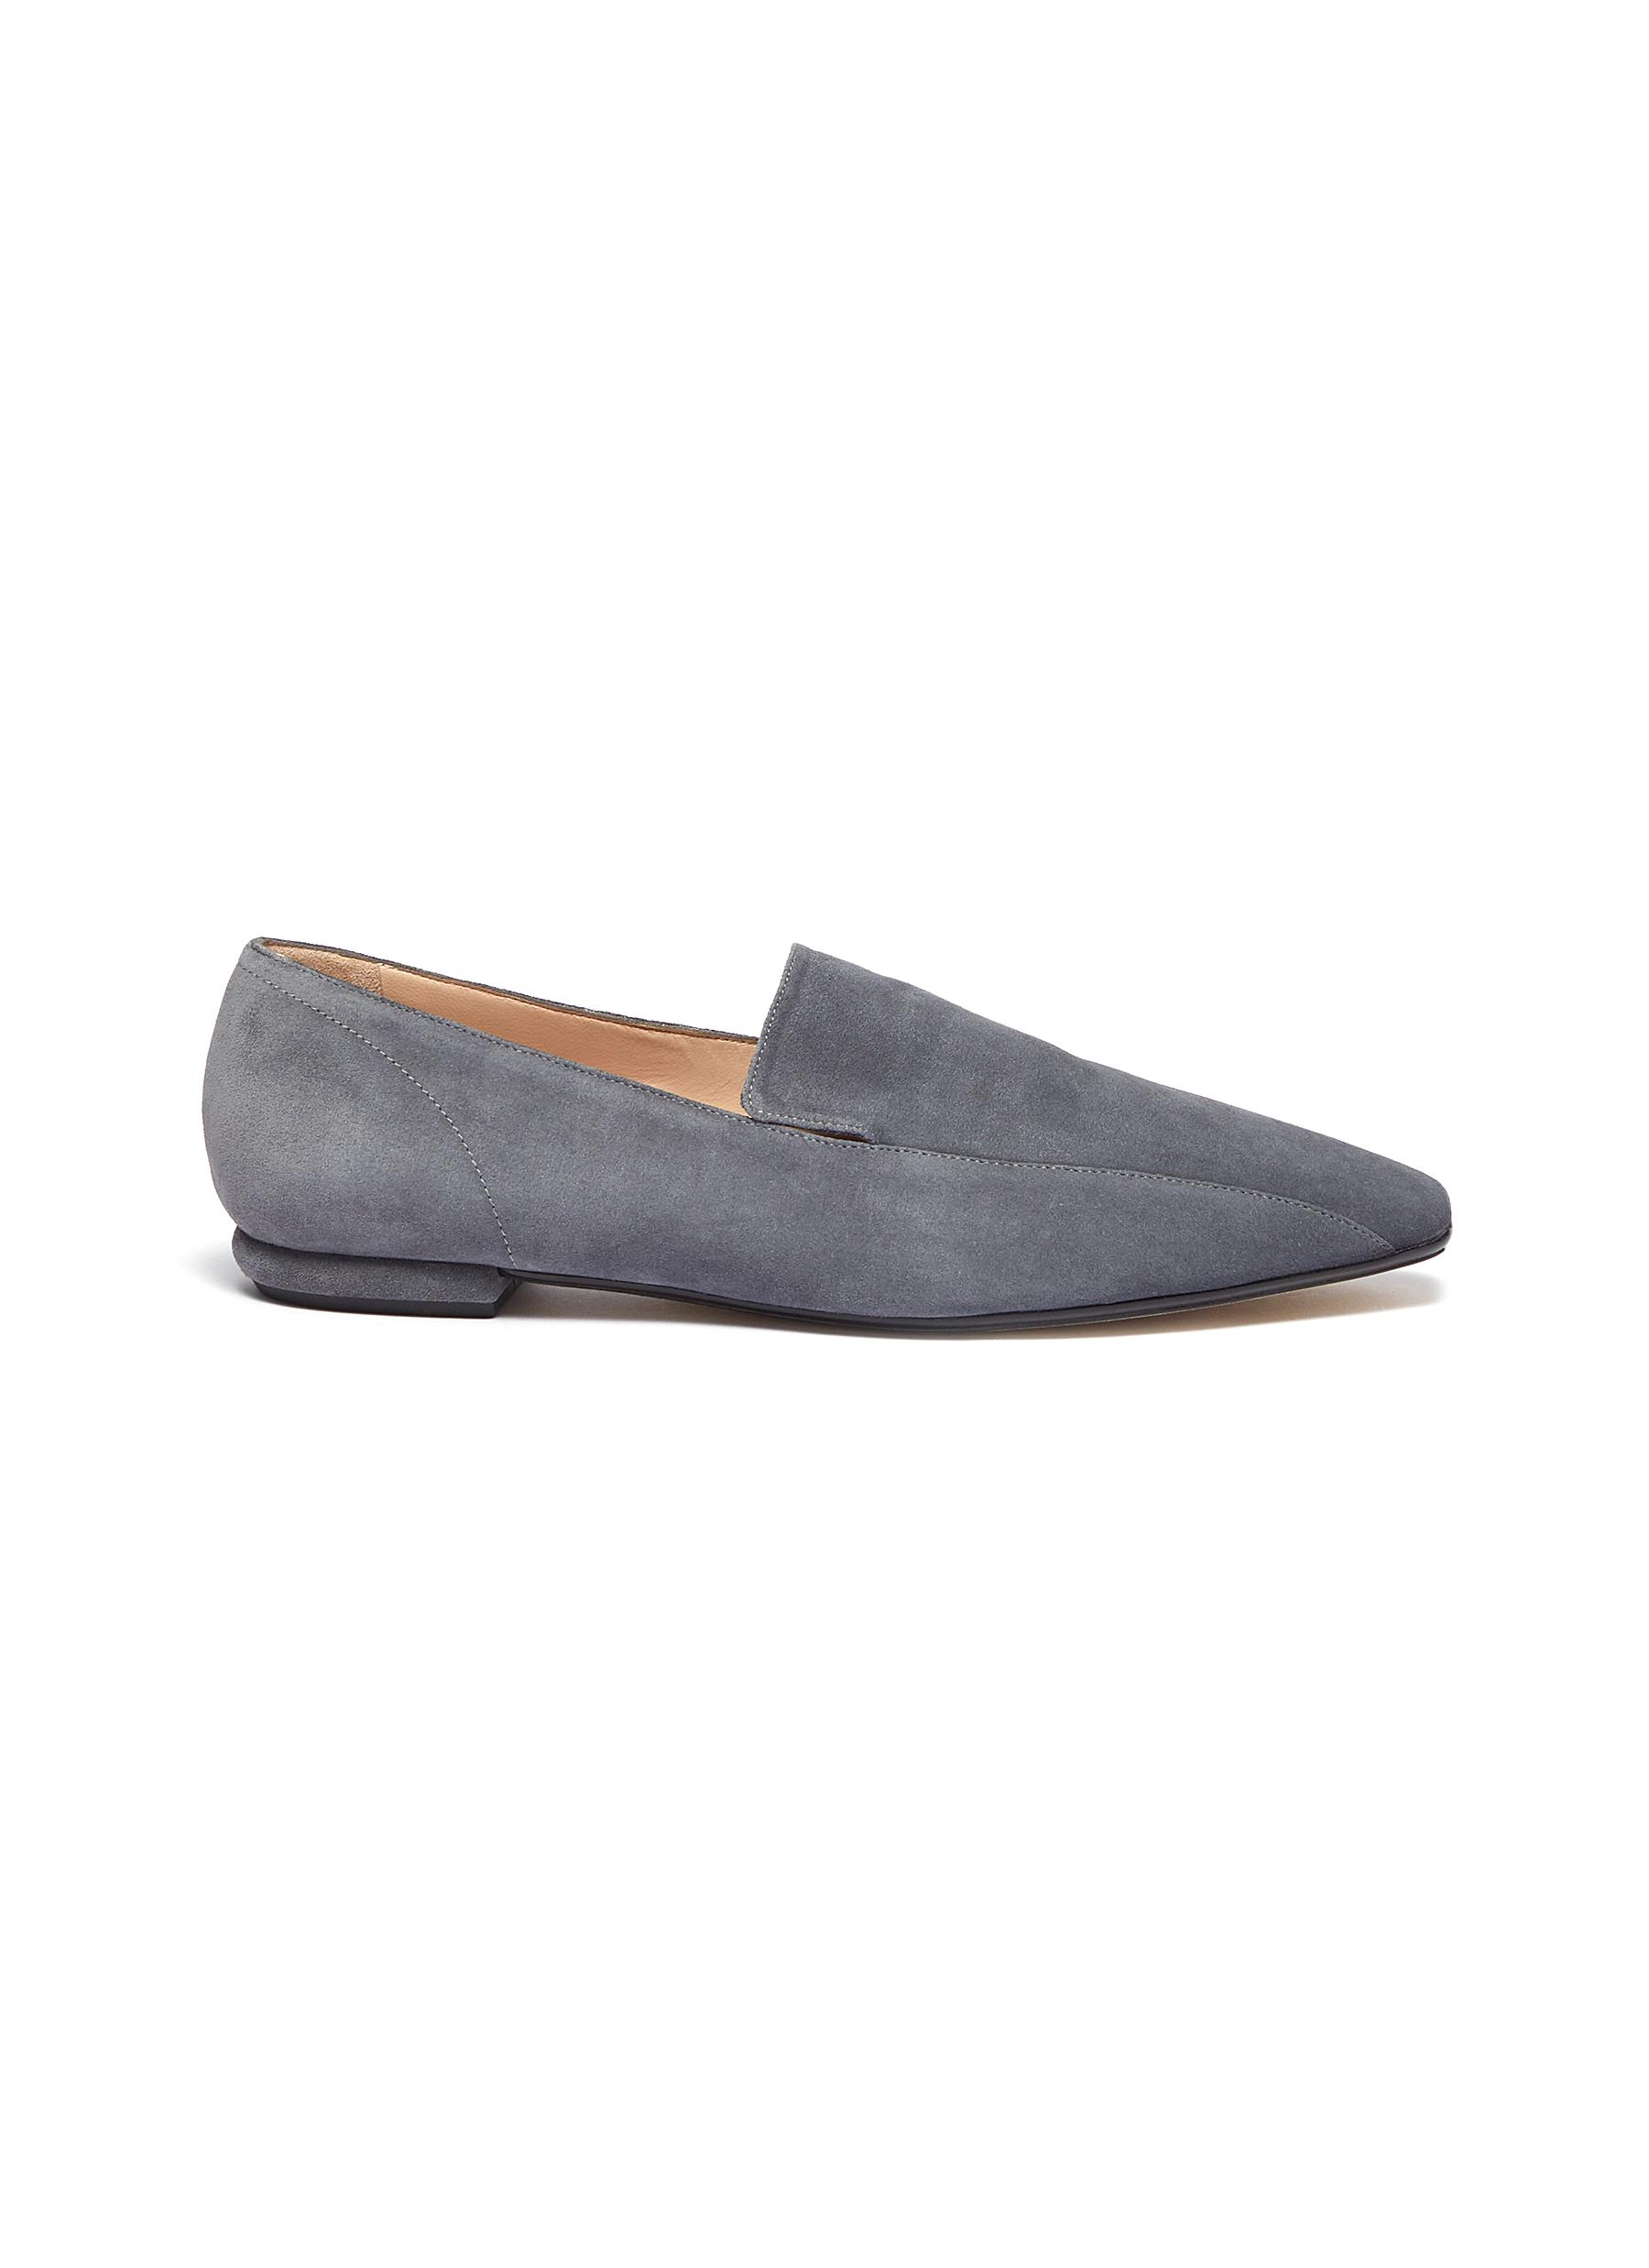 Suede square loafers by Rodo